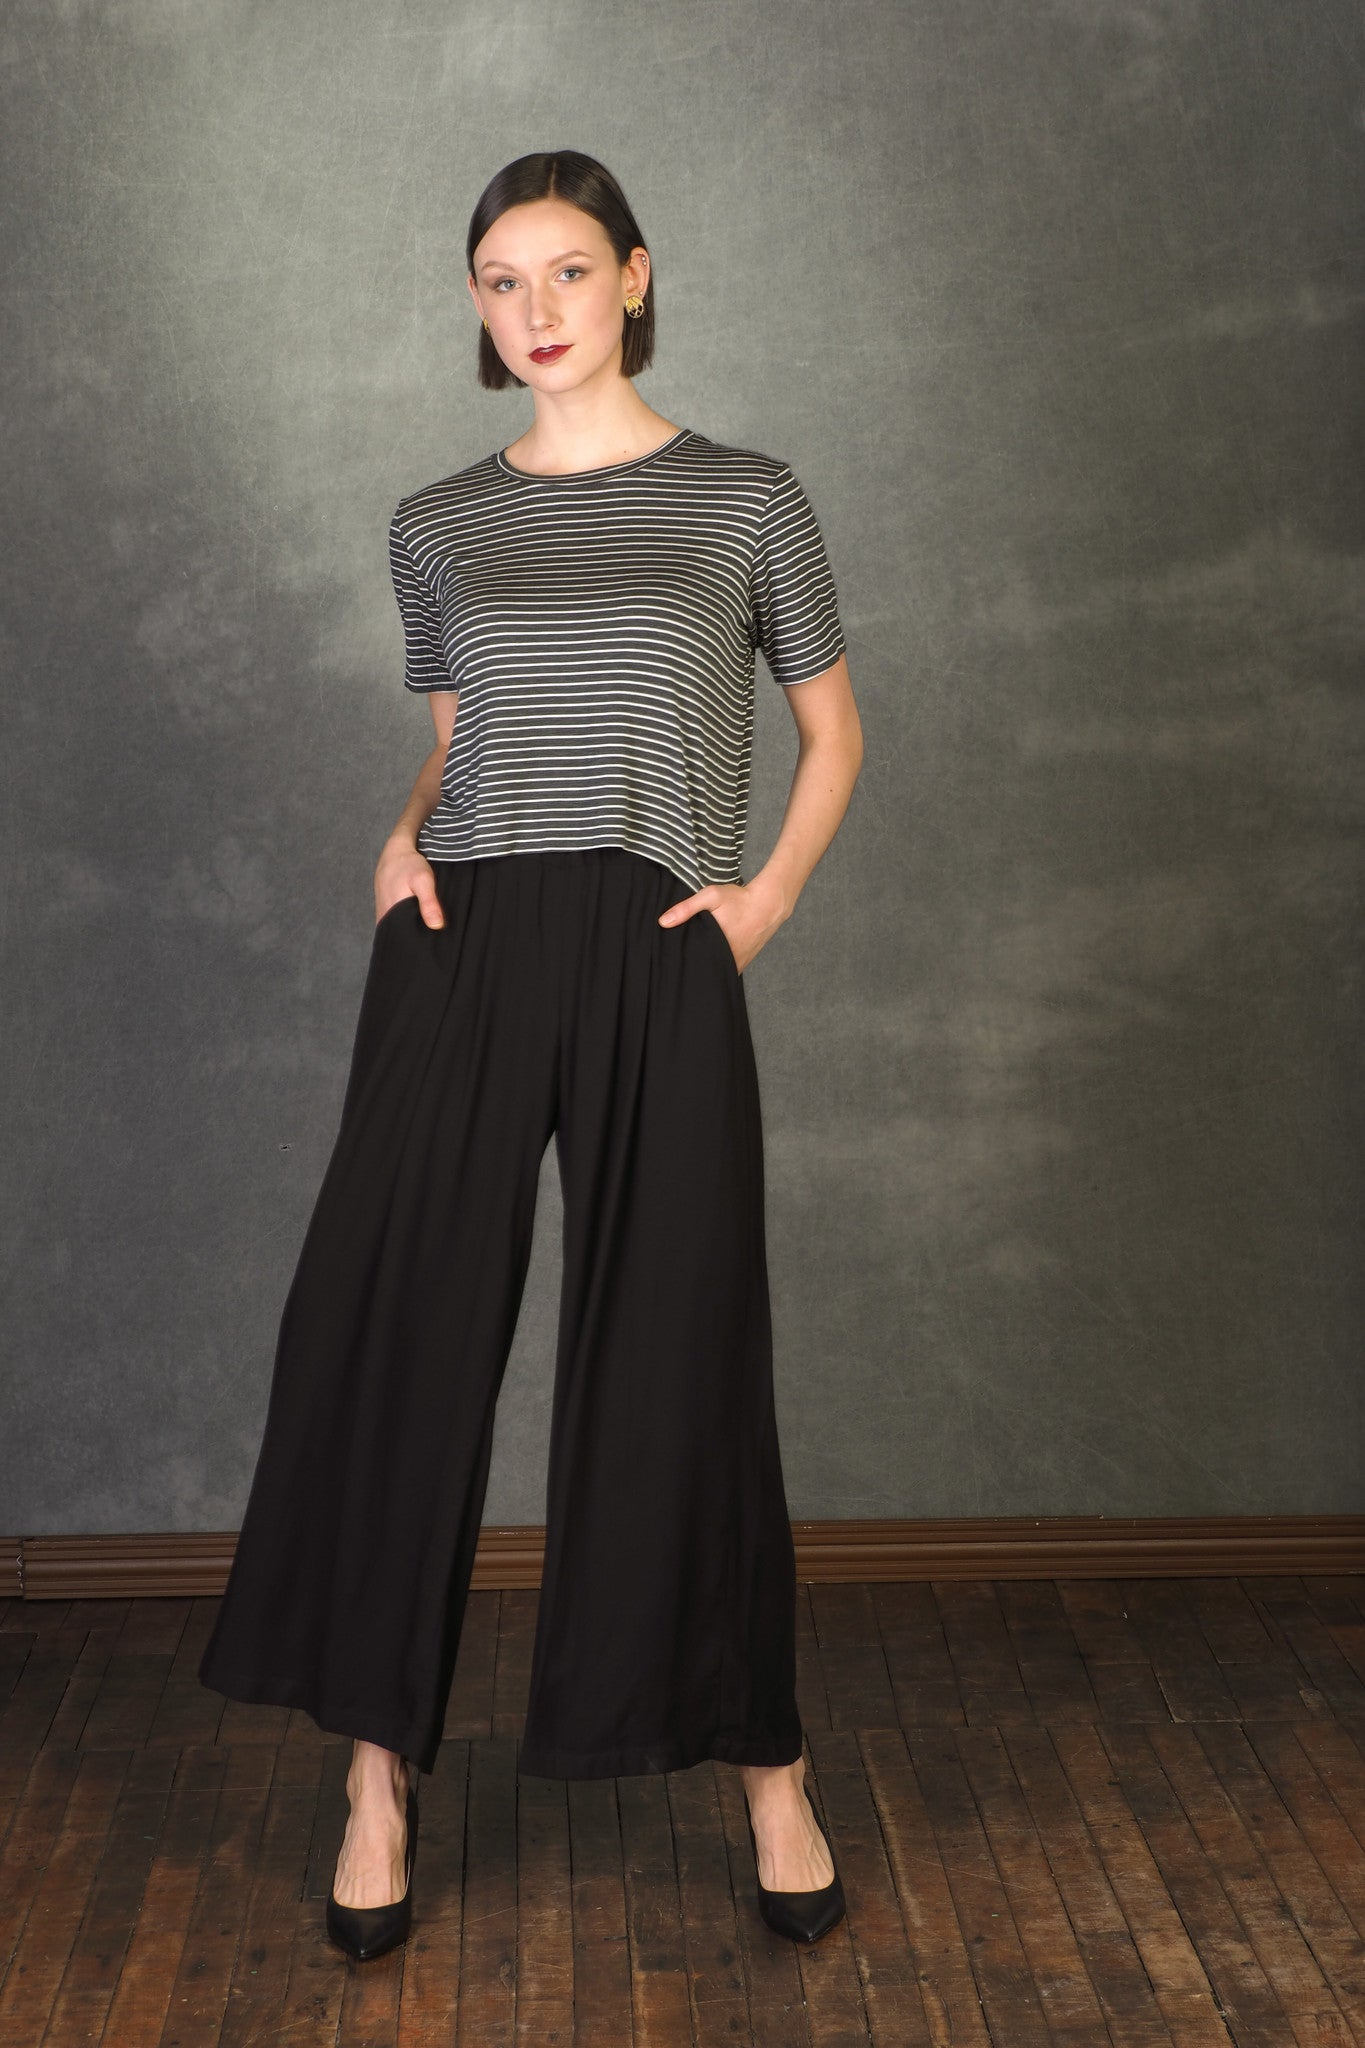 Ayla Top by MAS, Grey Stripe, T-shirt, boxy fit, half-length sleeve, cropped fit, size XS to XL, made in Montreal